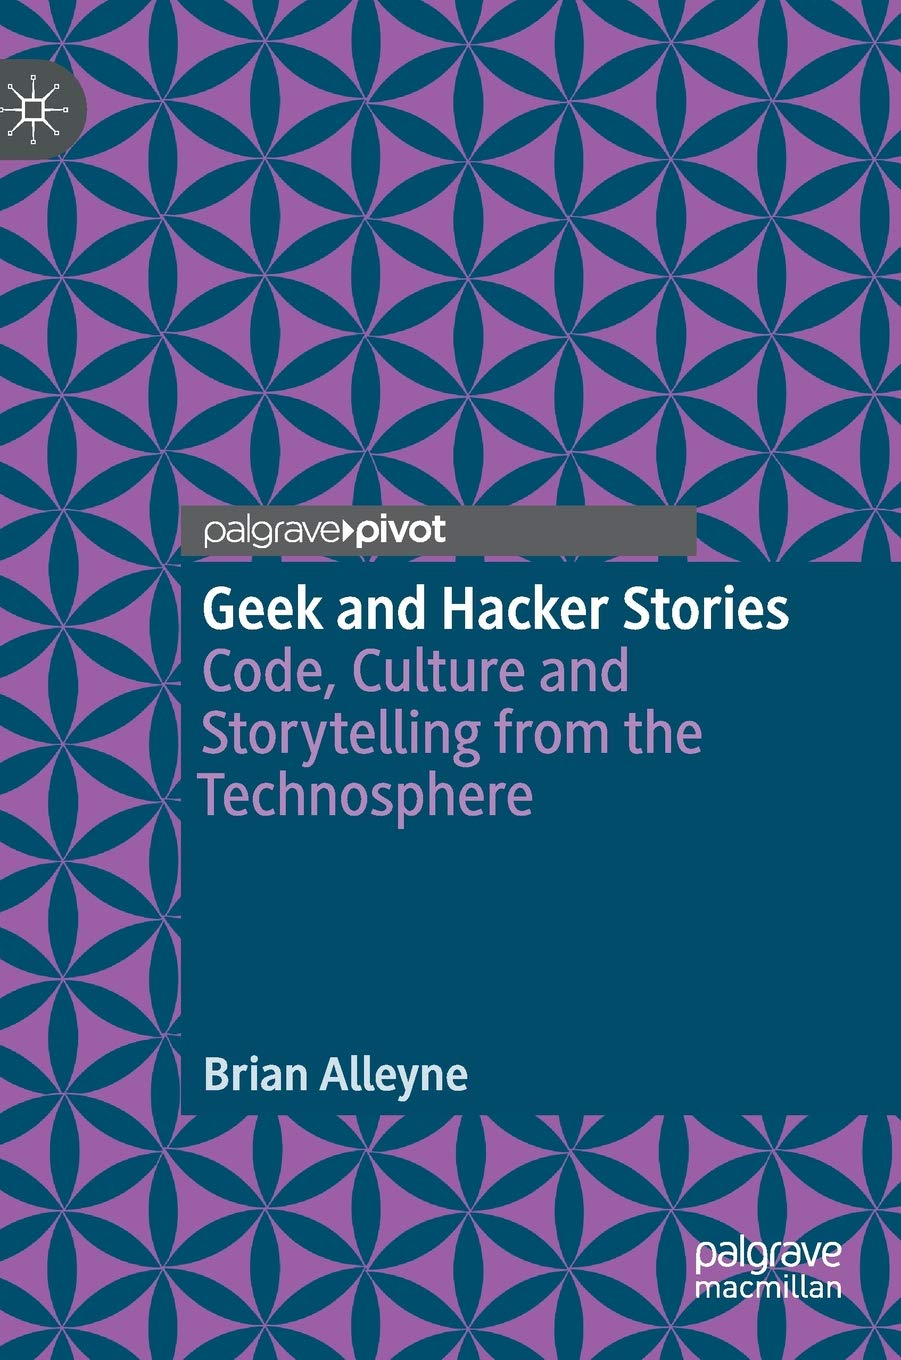 Geek and Hacker Stories: Code, Culture and Storytelling from the